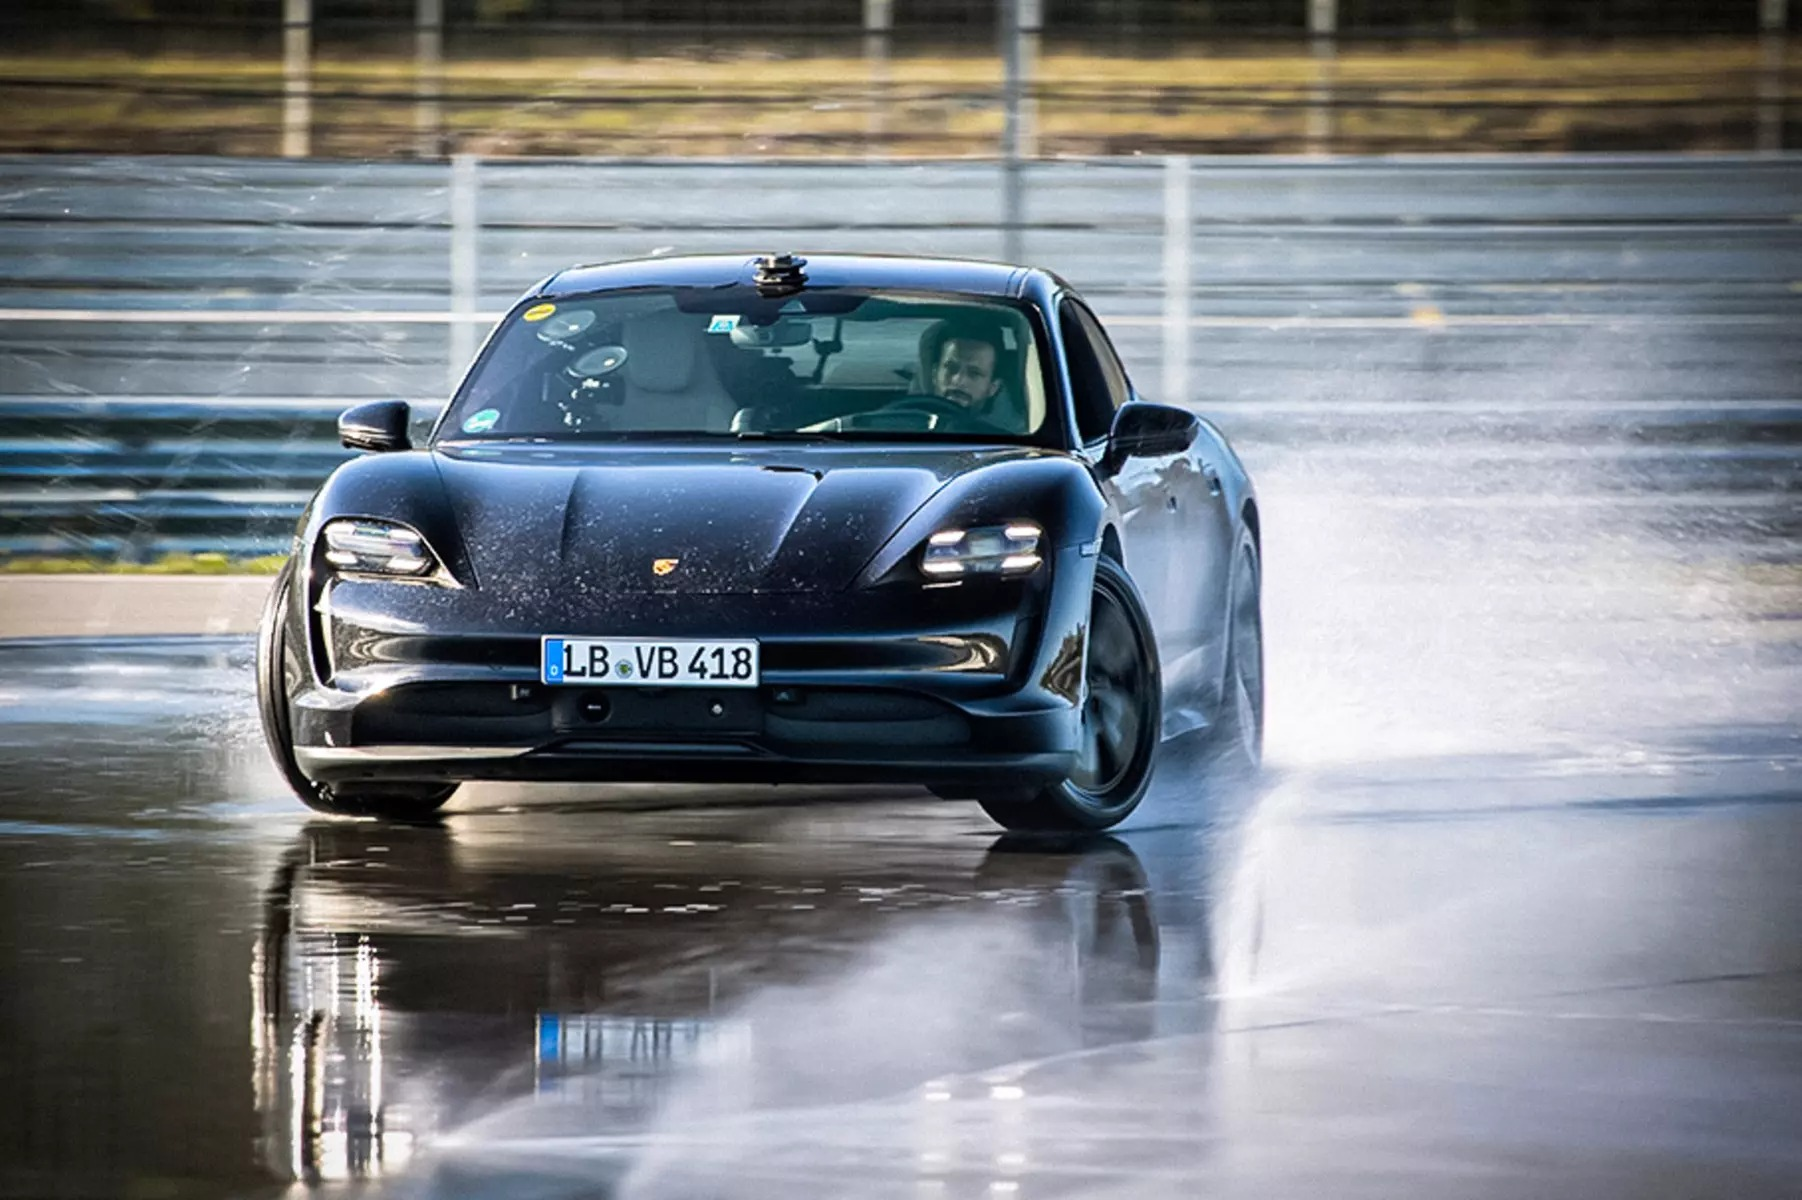 Porsche has made an entry in the Guinness Book for the longest controlled drift session in history. Its Taycan EV has made 42 kilometers in 55 minutes skidding sideways.